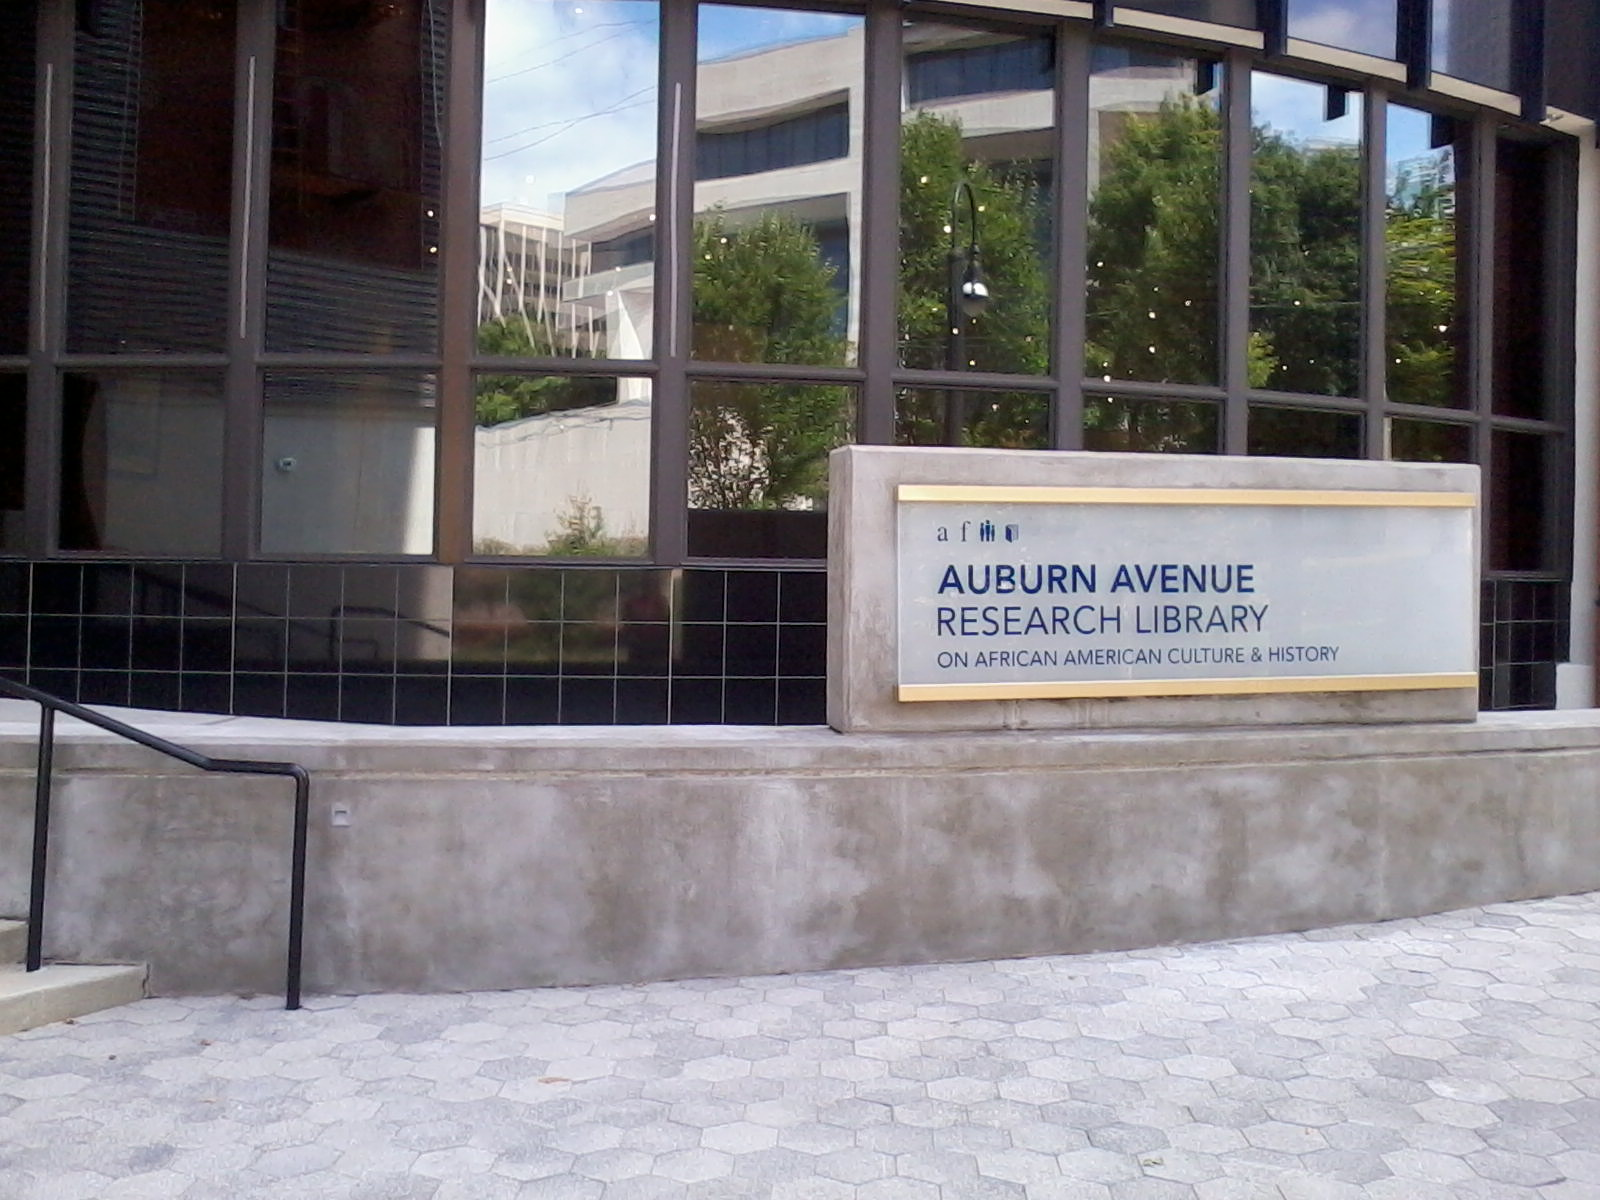 Photo of the entrance to the Auburn Avenue Research Library